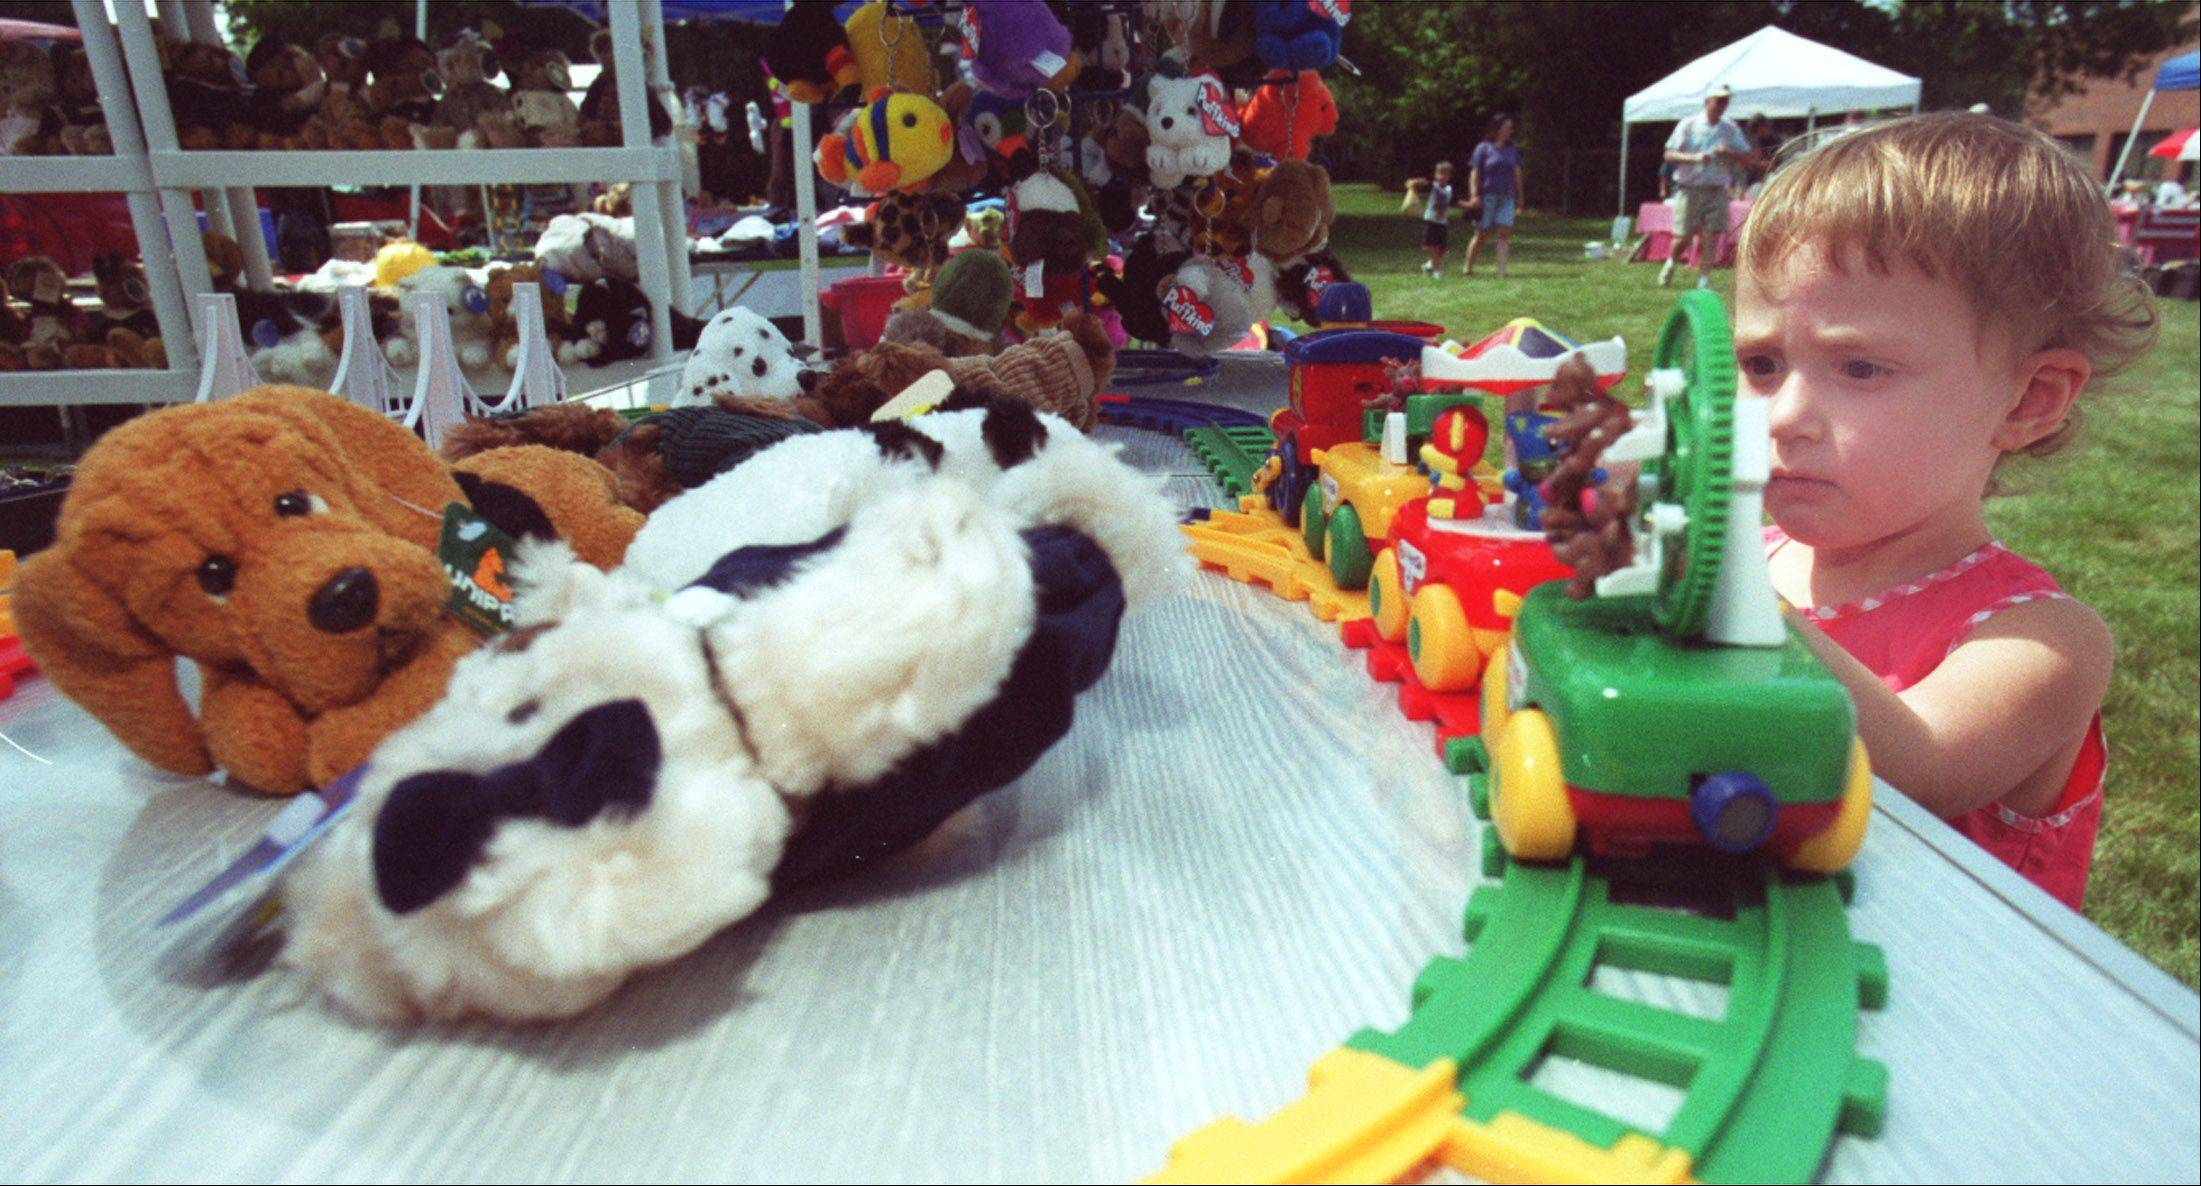 From children searching for toys to antique lovers hunting down the perfect find, the Yesterday's Farm Flea Market is sure to have something for everyone. Held this year from 9 a.m. to 6 p.m. on Sunday, Aug. 7, the flea market has become a staple among the farm's summer activities.